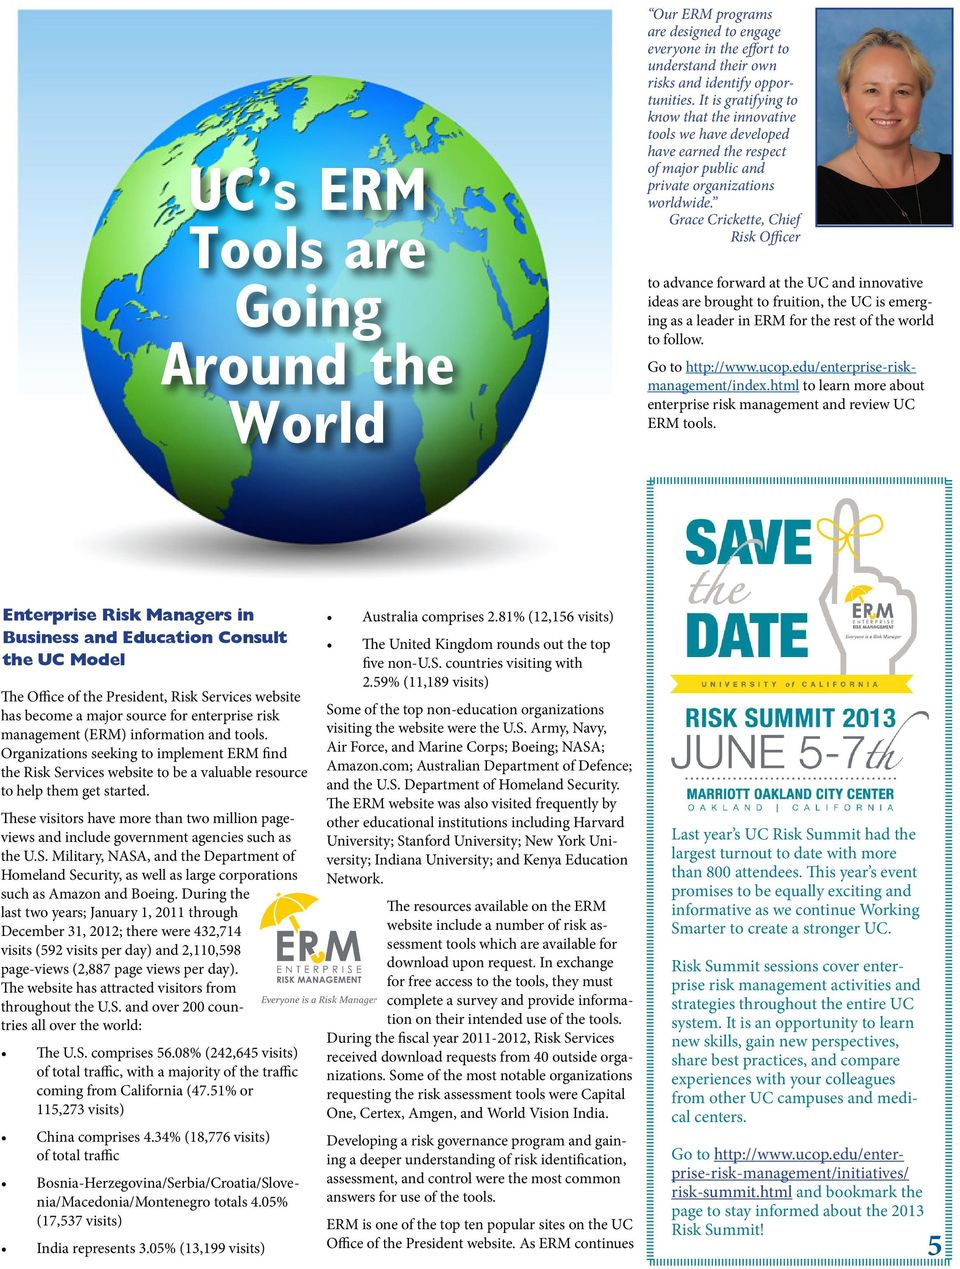 Grace Crickette, Chief Risk Officer to advance forward at the UC and innovative ideas are brought to fruition, the UC is emerging as a leader in ERM for the rest of the world to follow.